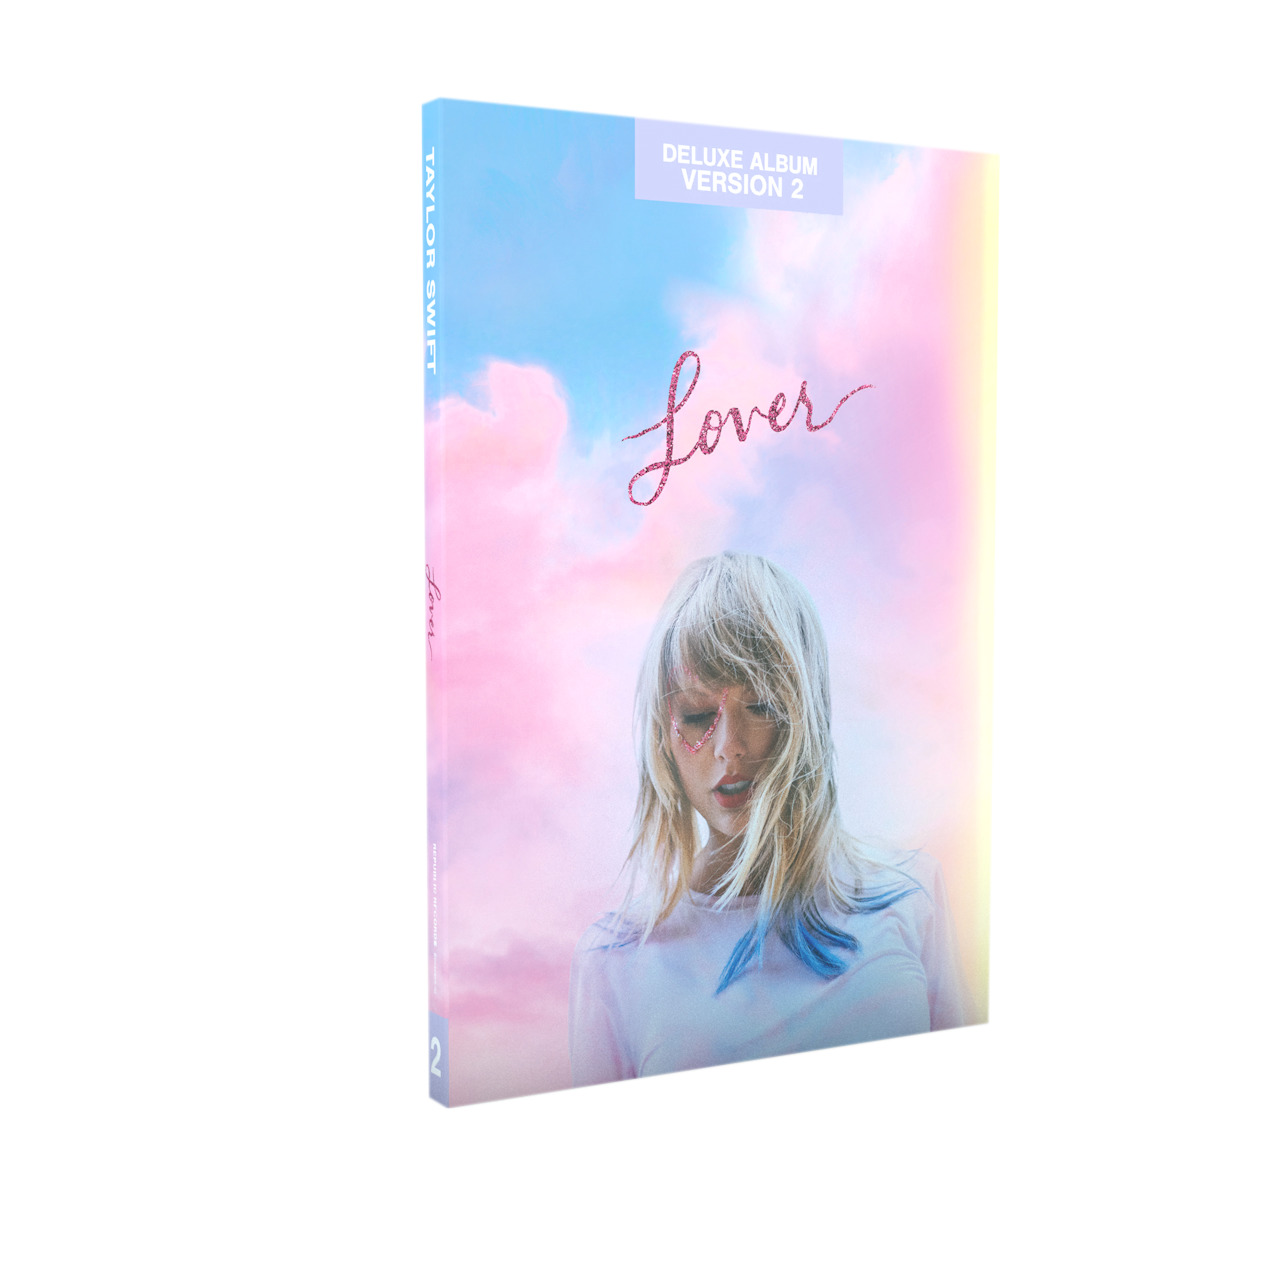 Lover - Deluxe Journal Version 2 by Taylor Swift image